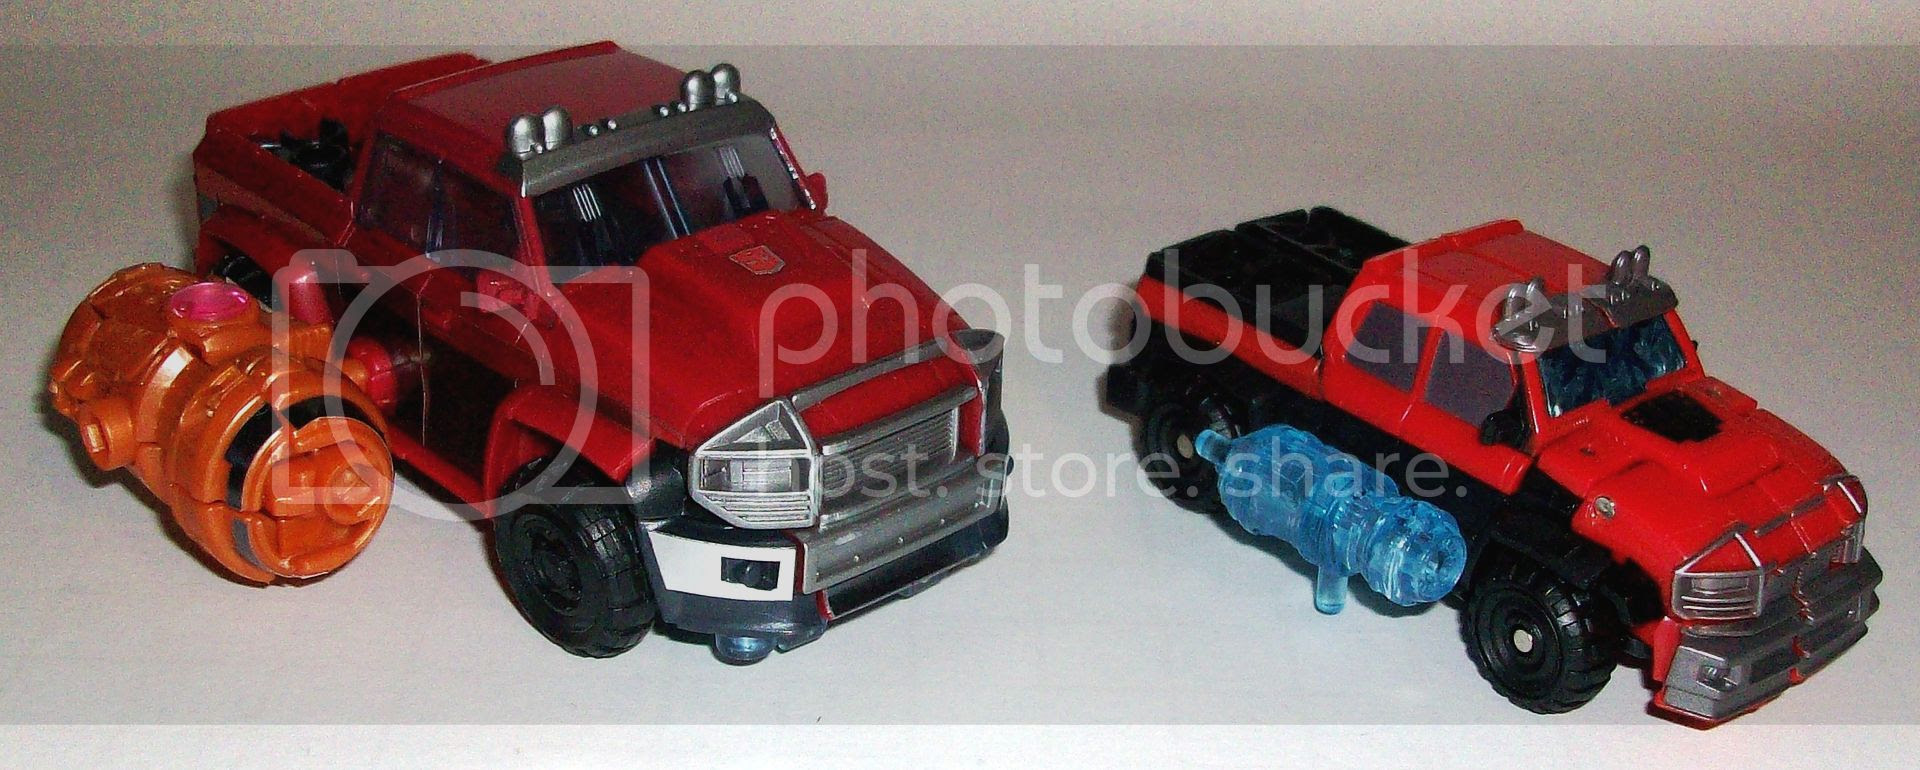 Ironhide AM-20 photo 198_zps0037ac9b.jpg